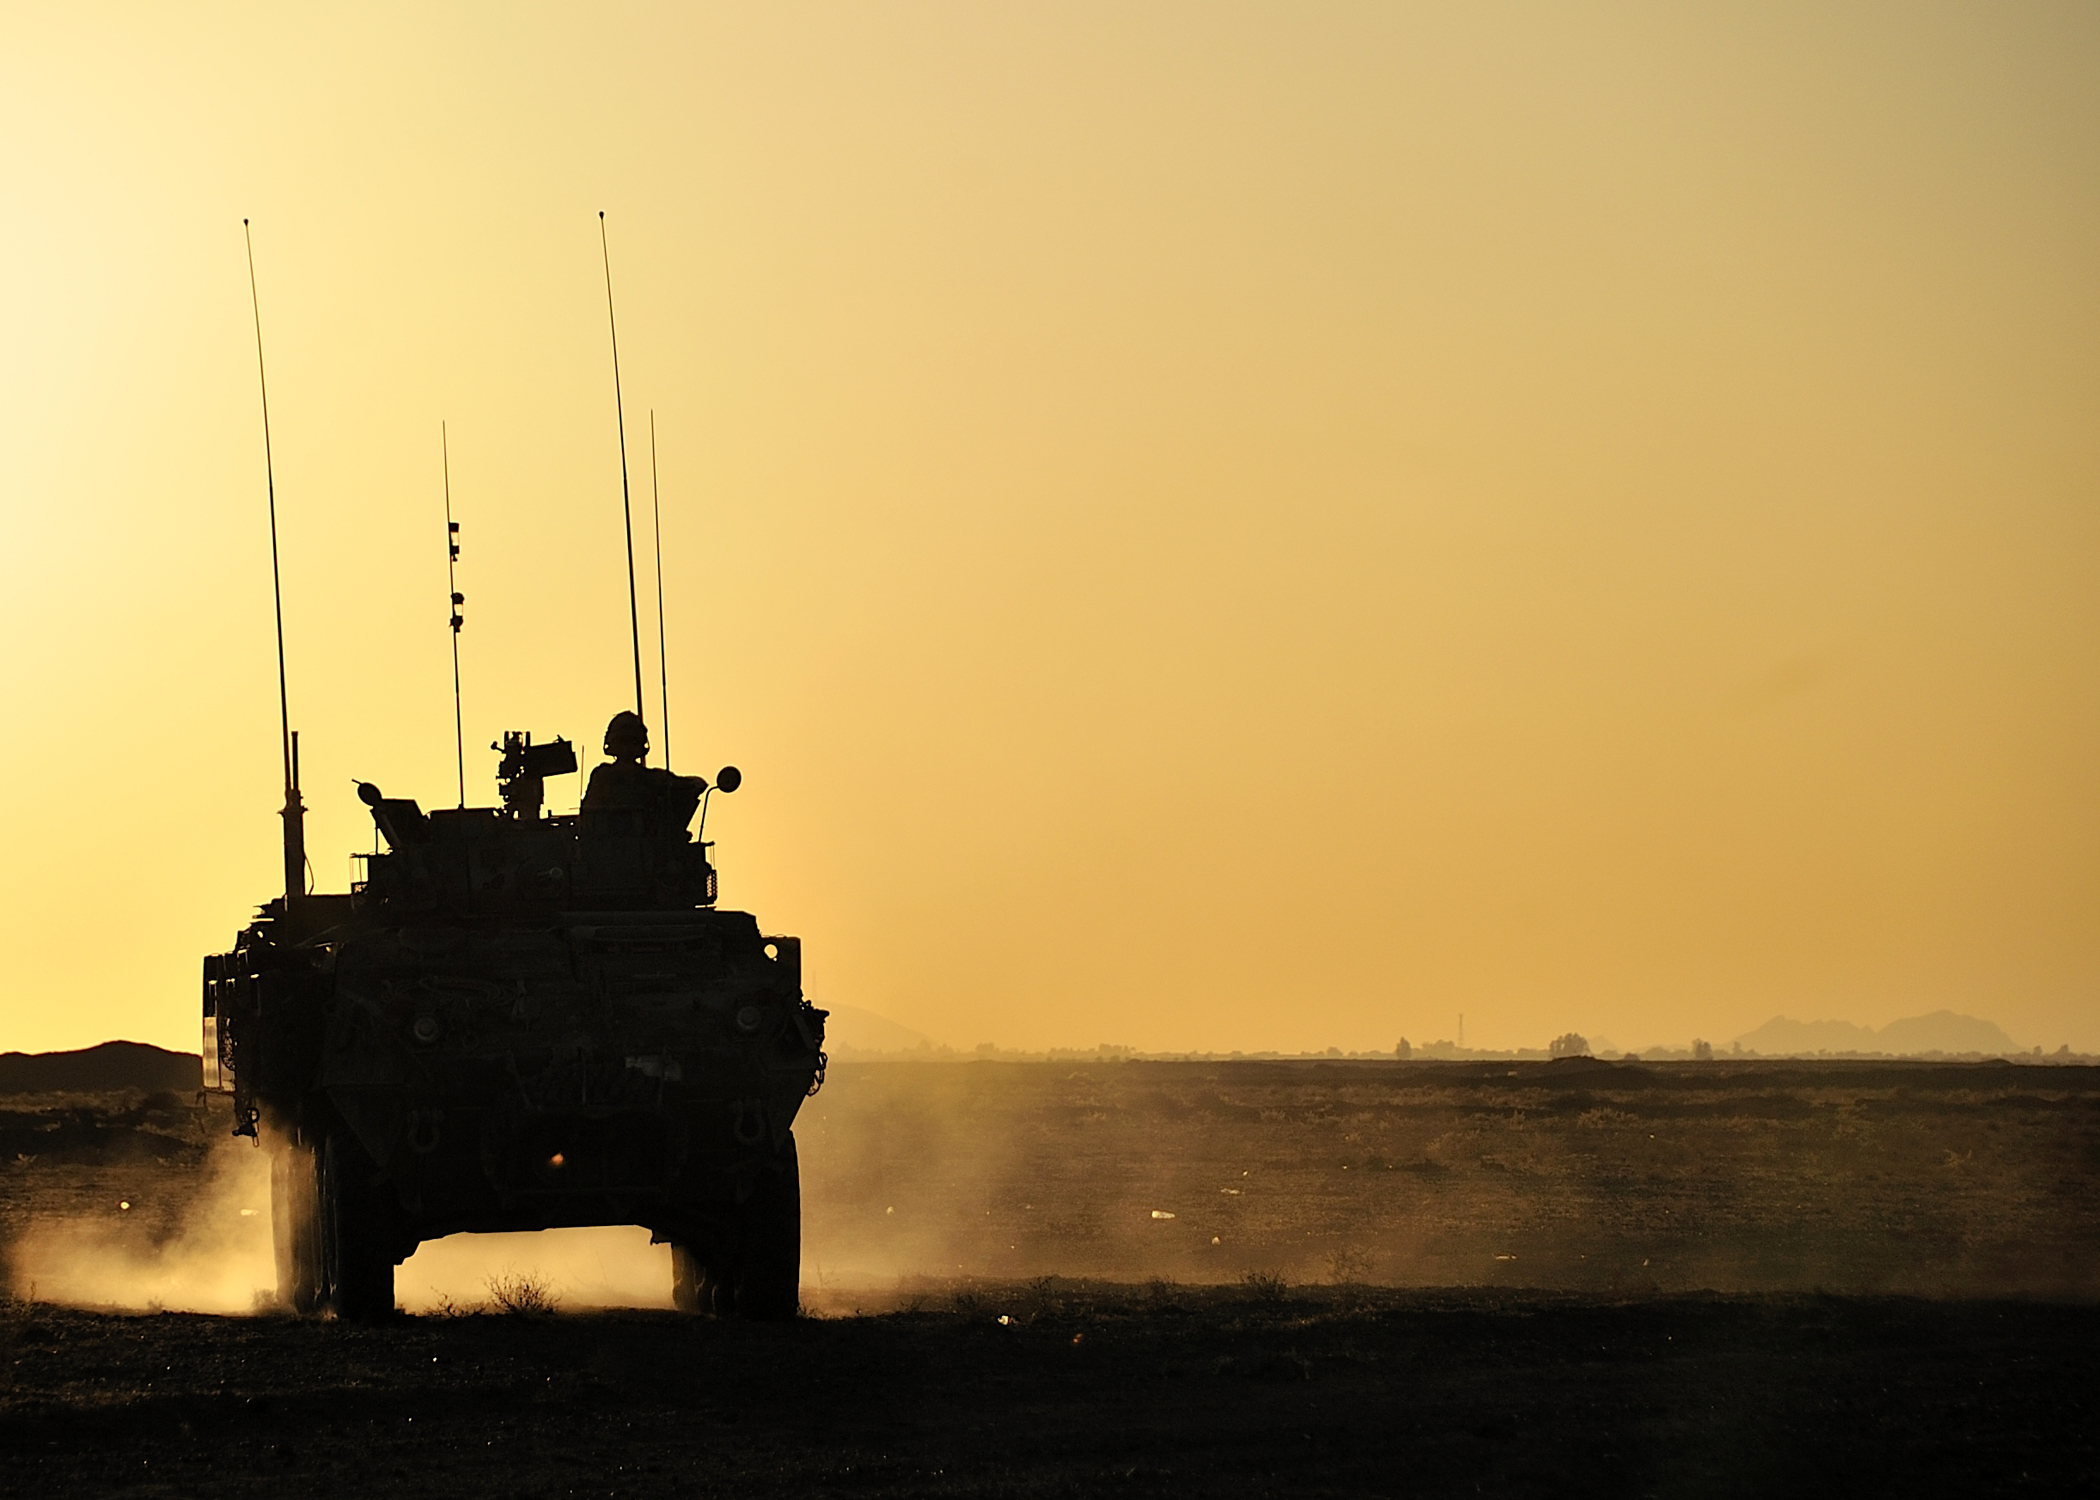 A silhouette of a LAV III is seen driving across an Afghani desert at sun down.